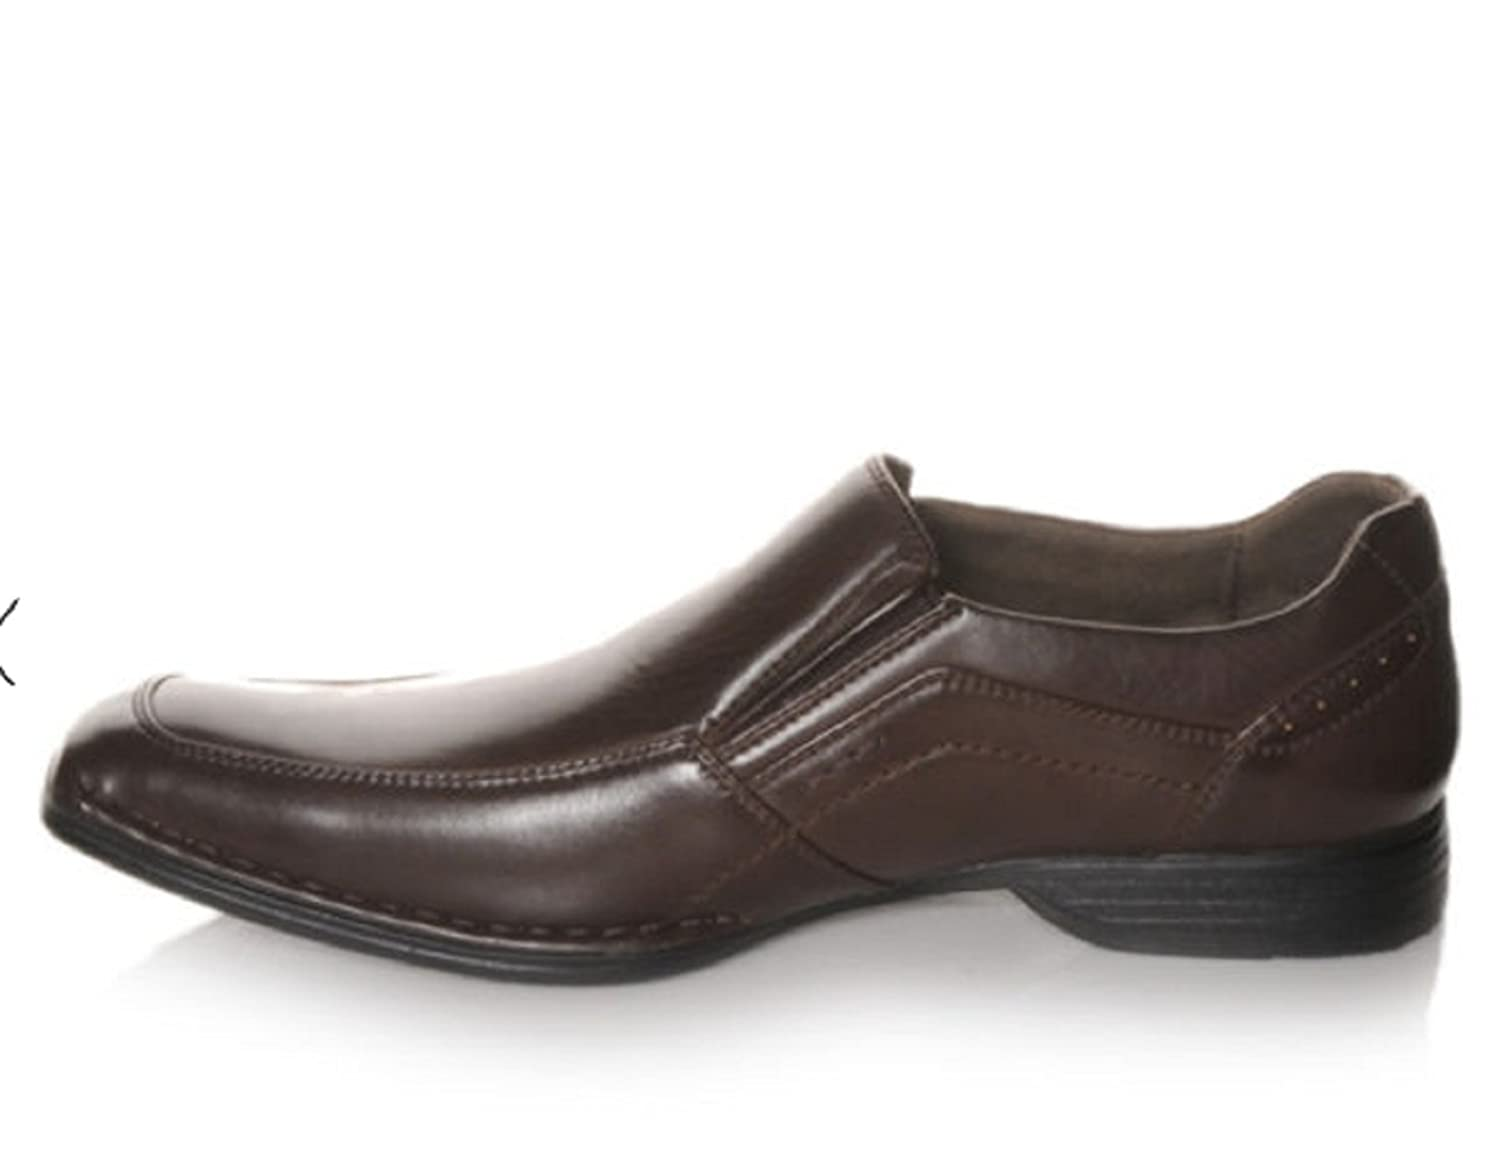 Amazoncom  Madden Shoes Madden MSly Mens Dress Dark Brown  Loafers   SlipOns